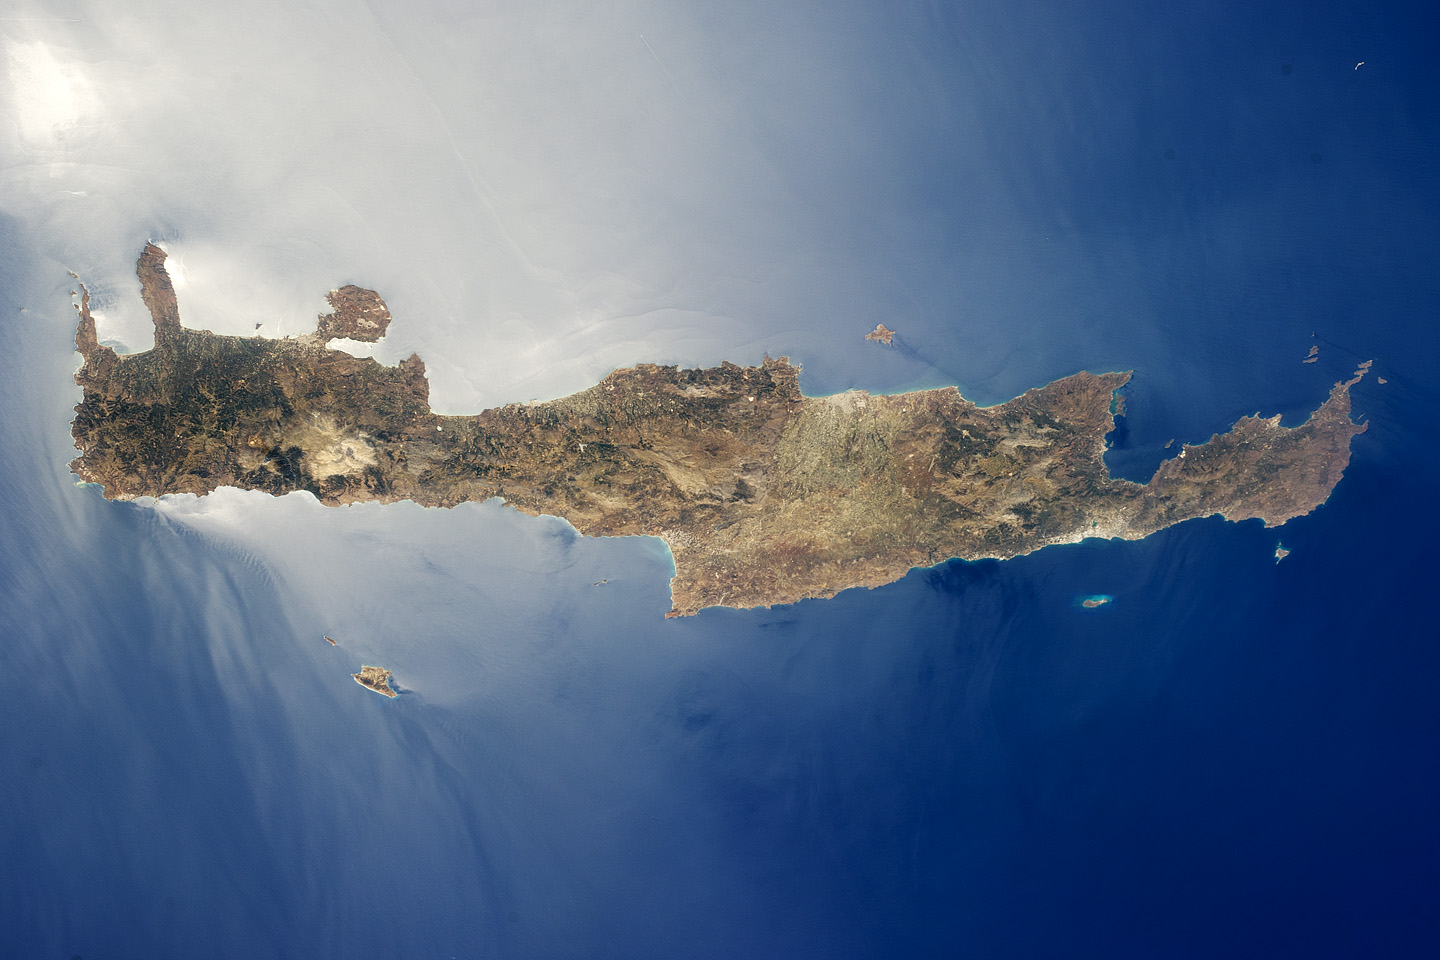 Today's Image of the Day comes thanks to the NASA Earth Observatory and features a look at the island of Crete, Greece and the Mediterranean Sea.